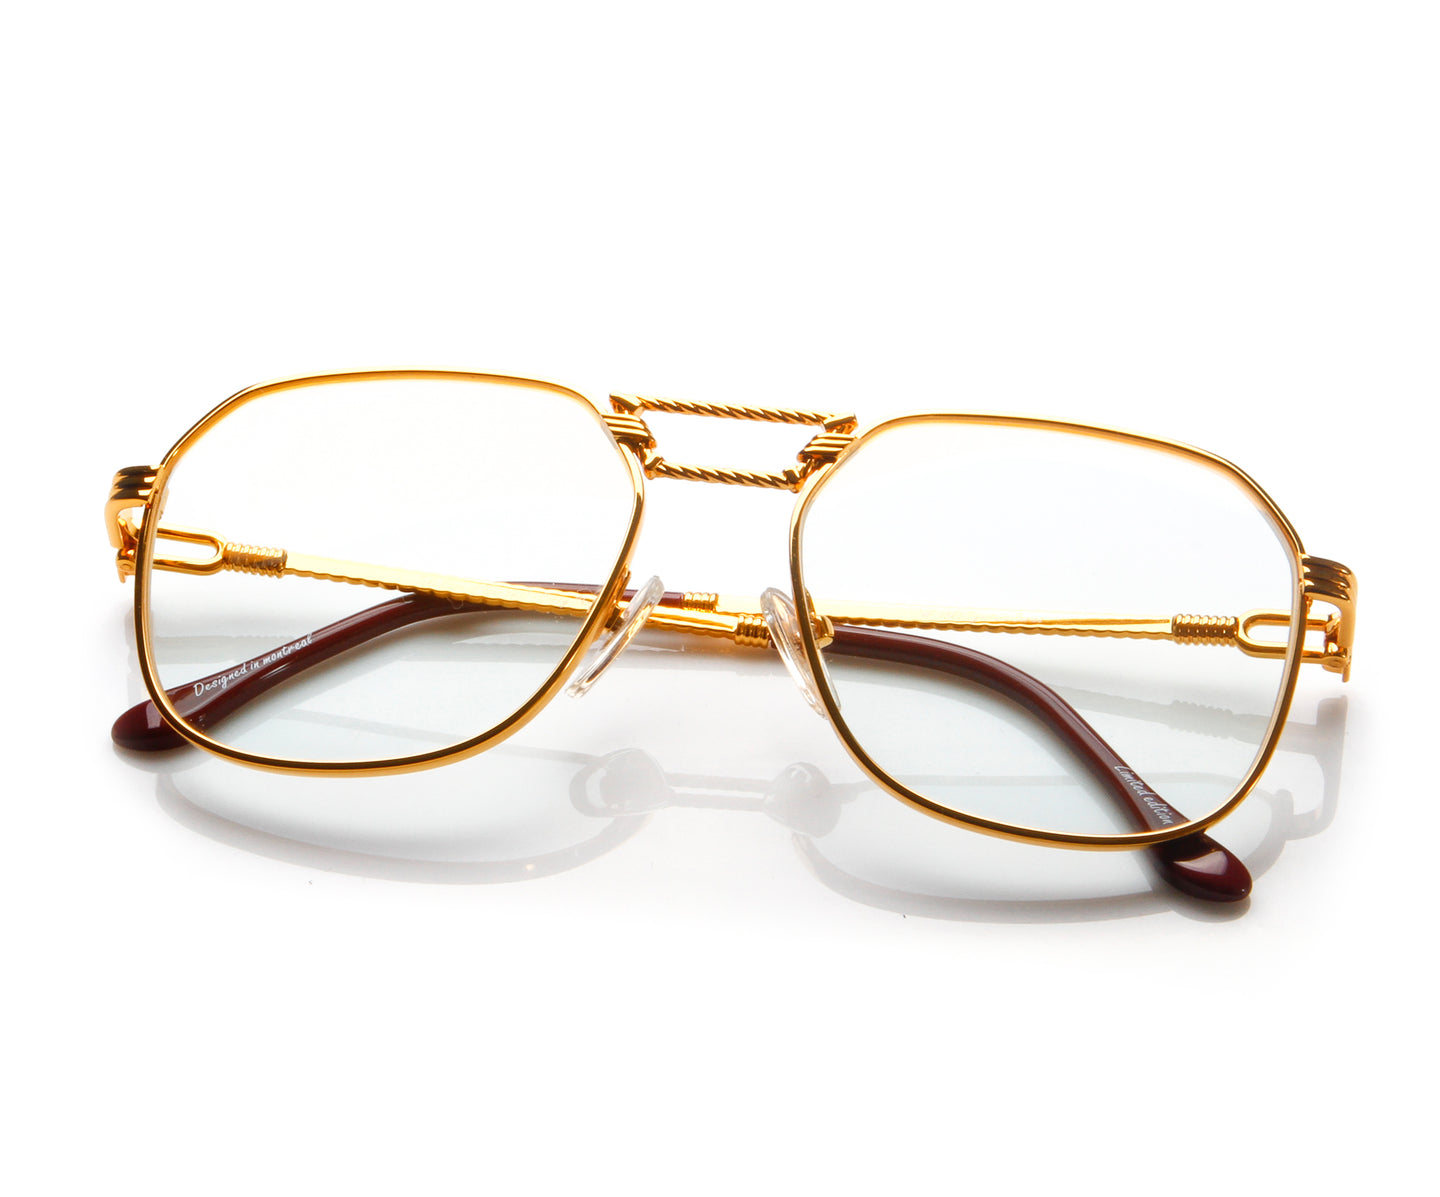 CEO Masterpiece 24KT Gold, VF Masterpiece , glasses frames, eyeglasses online, eyeglass frames, mens glasses, womens glasses, buy glasses online, designer eyeglasses, vintage sunglasses, retro sunglasses, vintage glasses, sunglass, eyeglass, glasses, lens, vintage frames company, vf